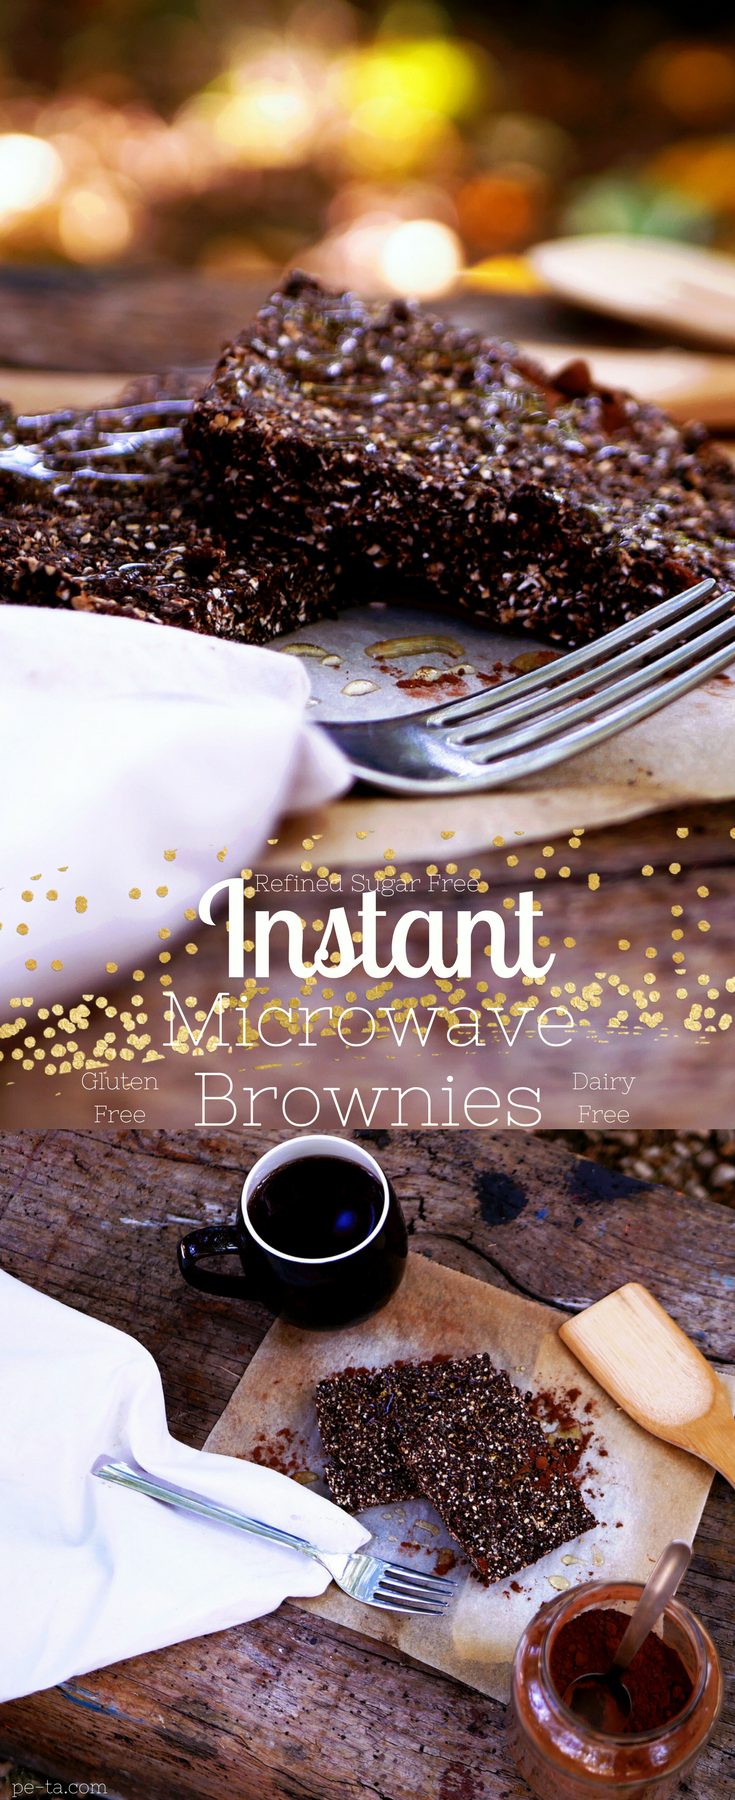 Instant Microwave Brownies